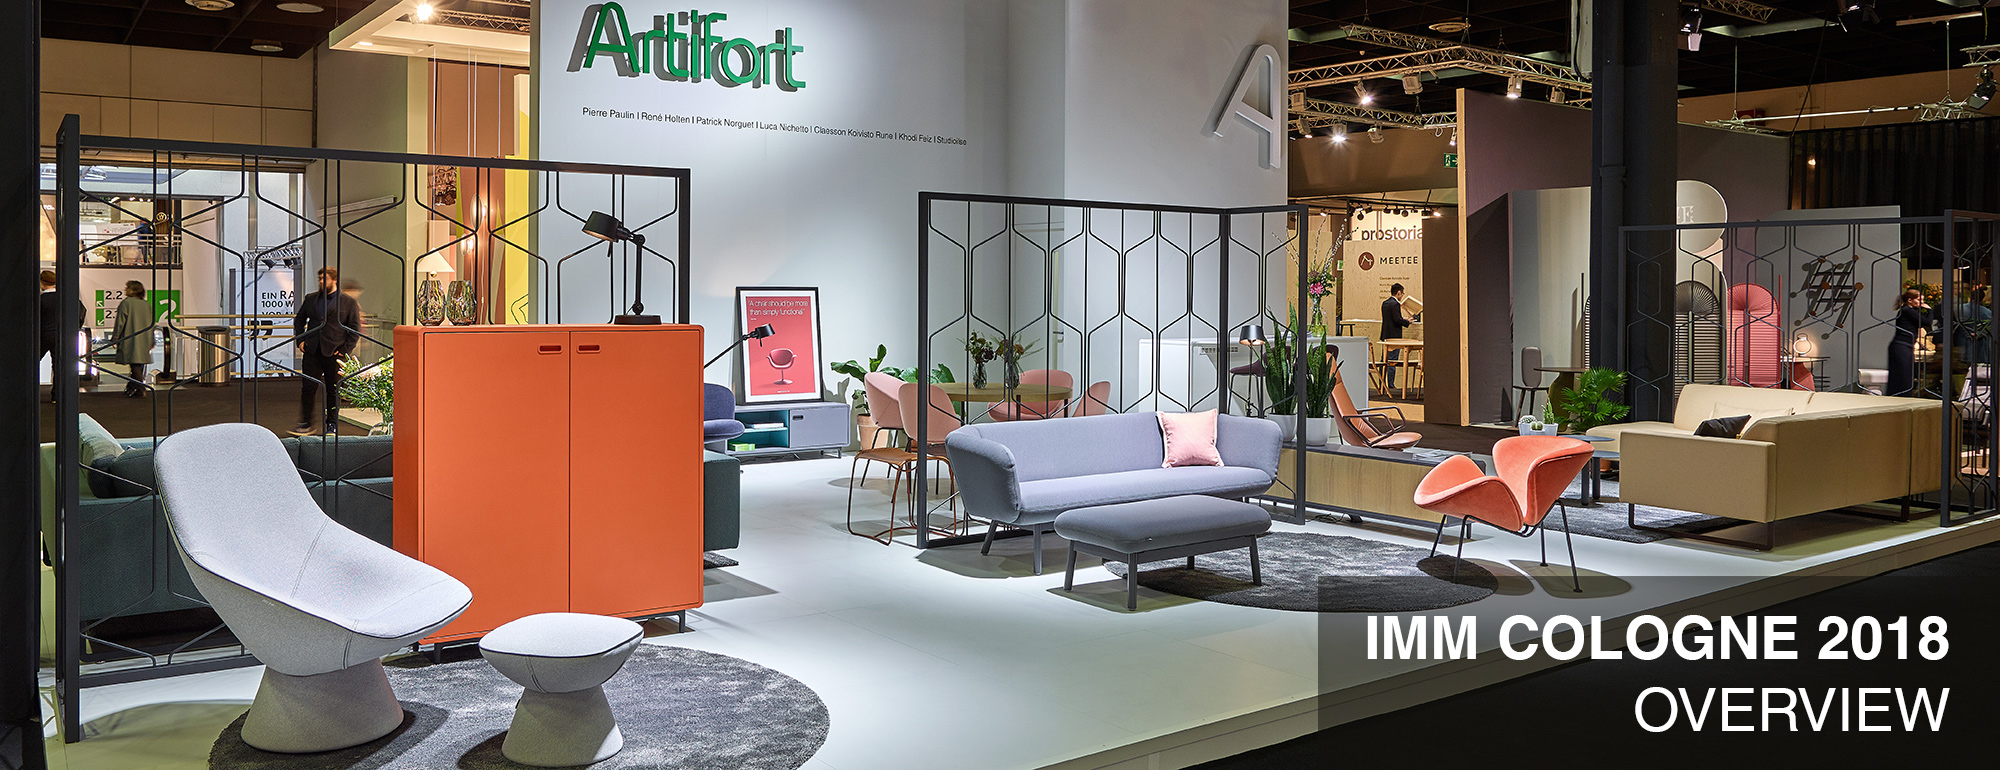 Overview Artifort At IMM Cologne 2018